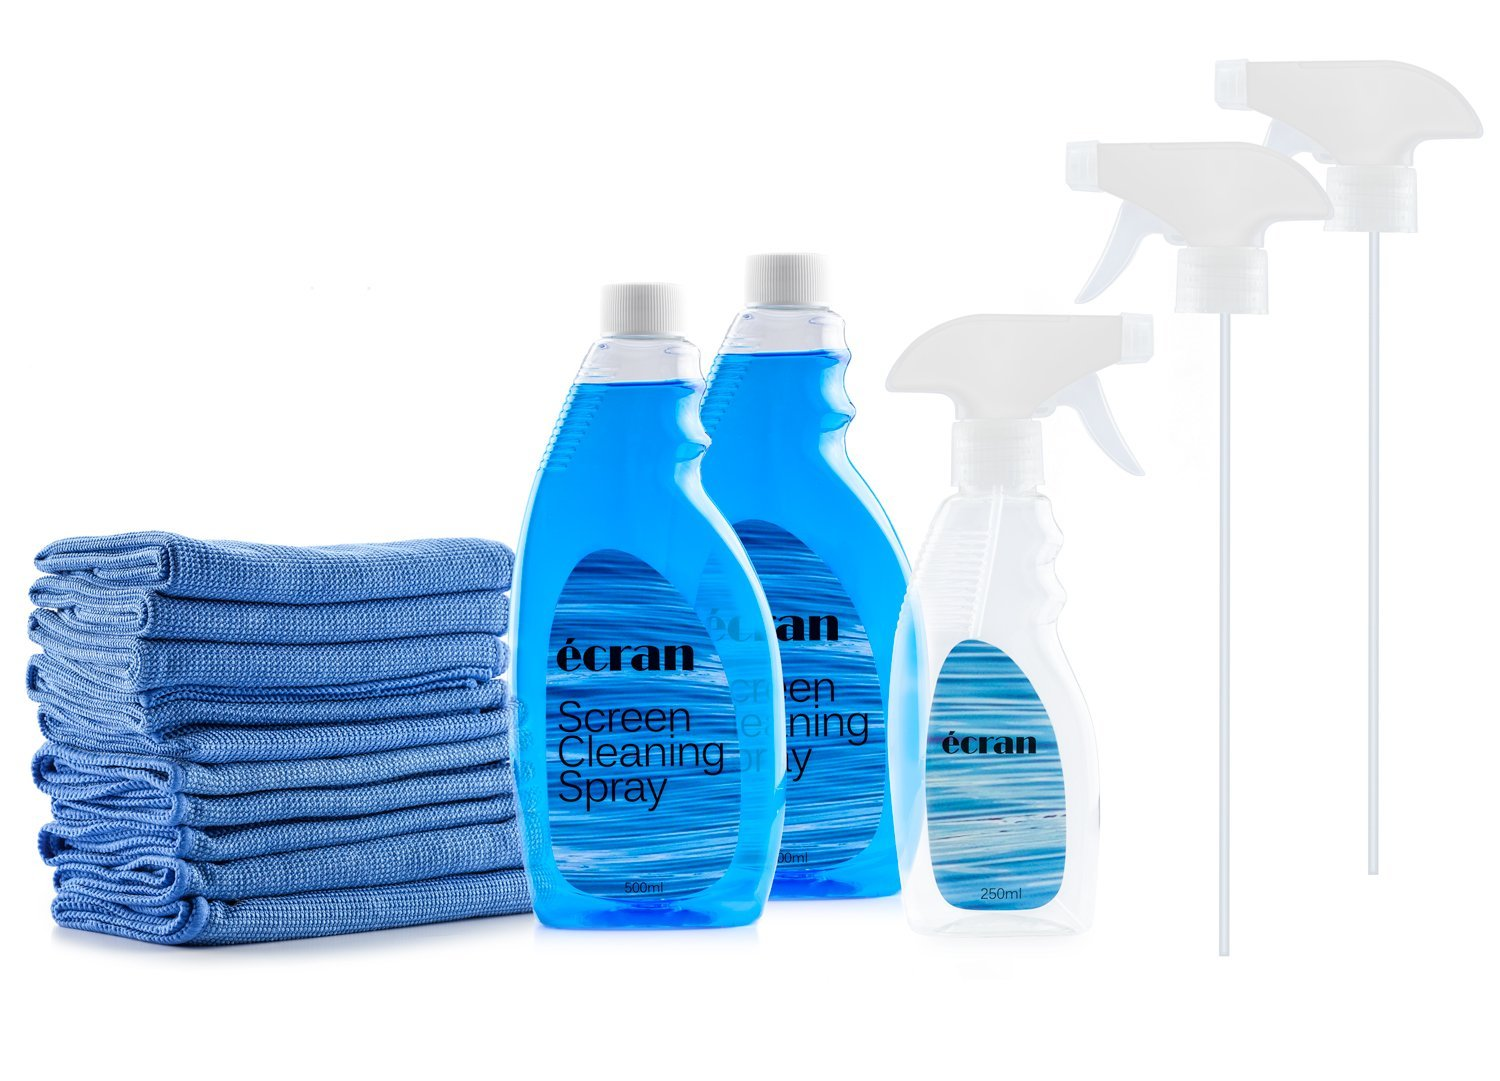 """Ecran Screen Cleaning Kit with 2 Bottles of Screen Cleaning Spray 16.9 oz 